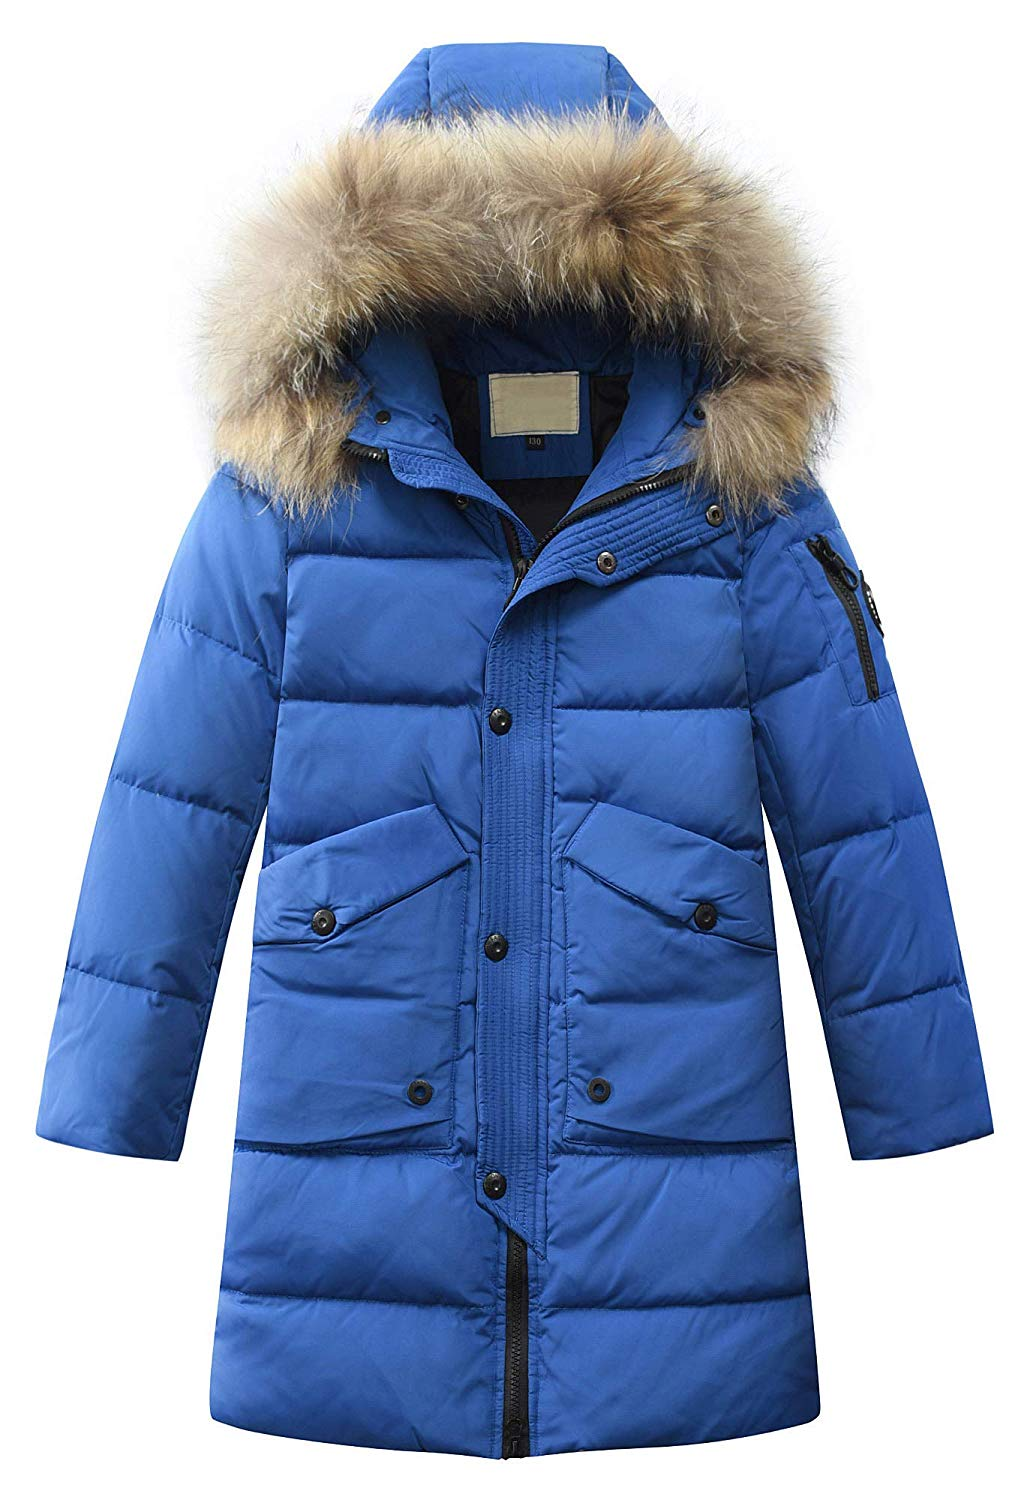 Stesti Winter Jacket Girls Cotton Padded Warm Outerwear Down Winter Coat Baby Girl